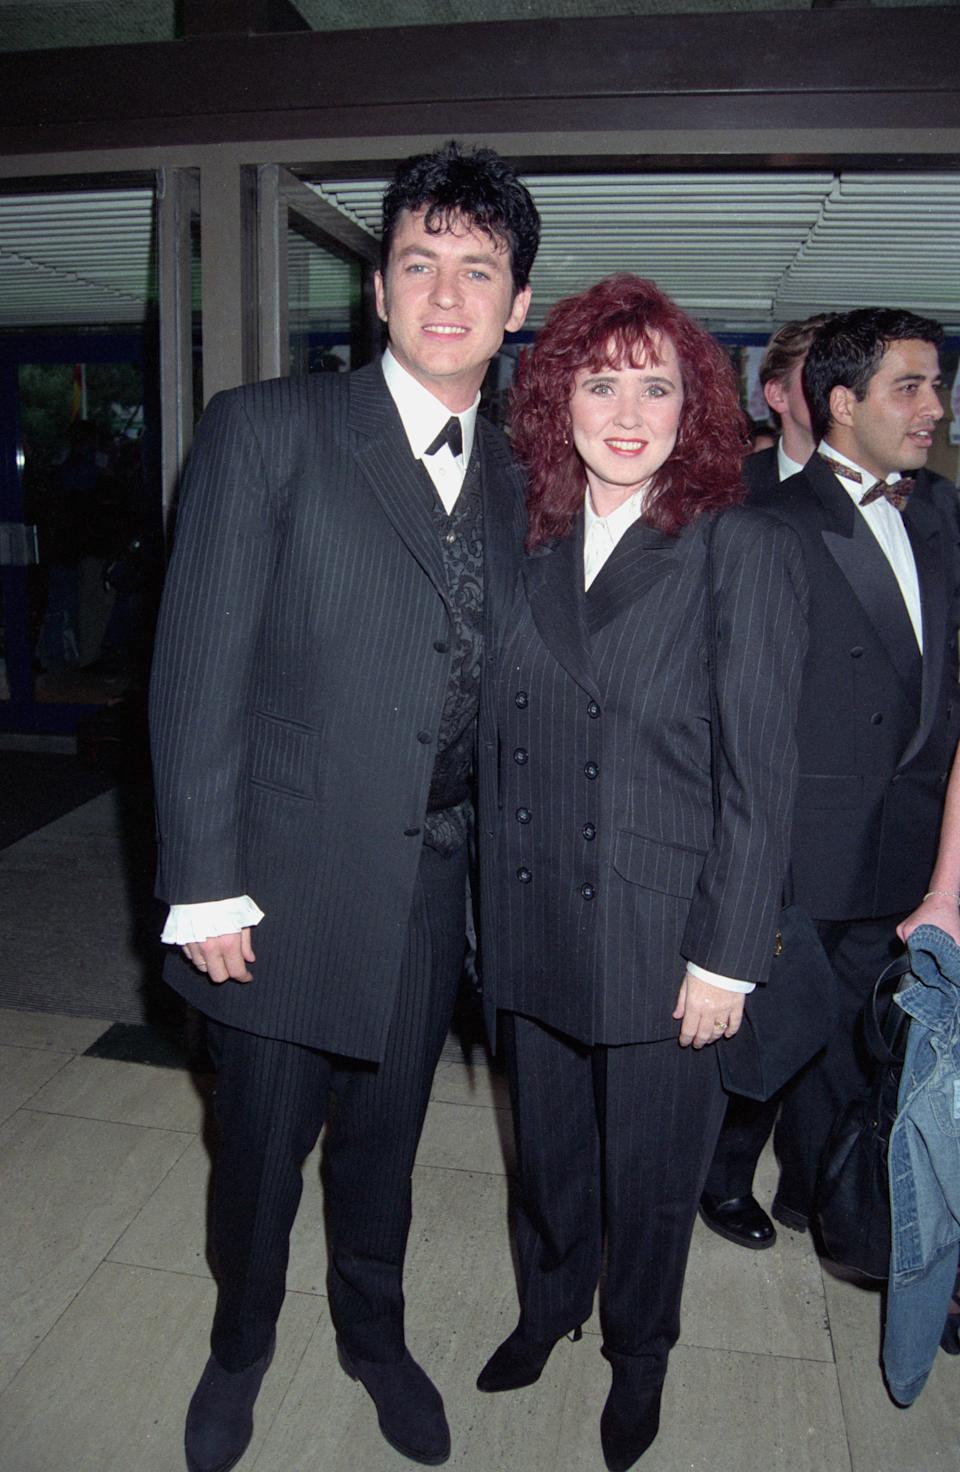 Coleen Nolan with then-husband Shane Richie in 1995. (Photo by Dave Benett/Hulton Archive/Getty Images)